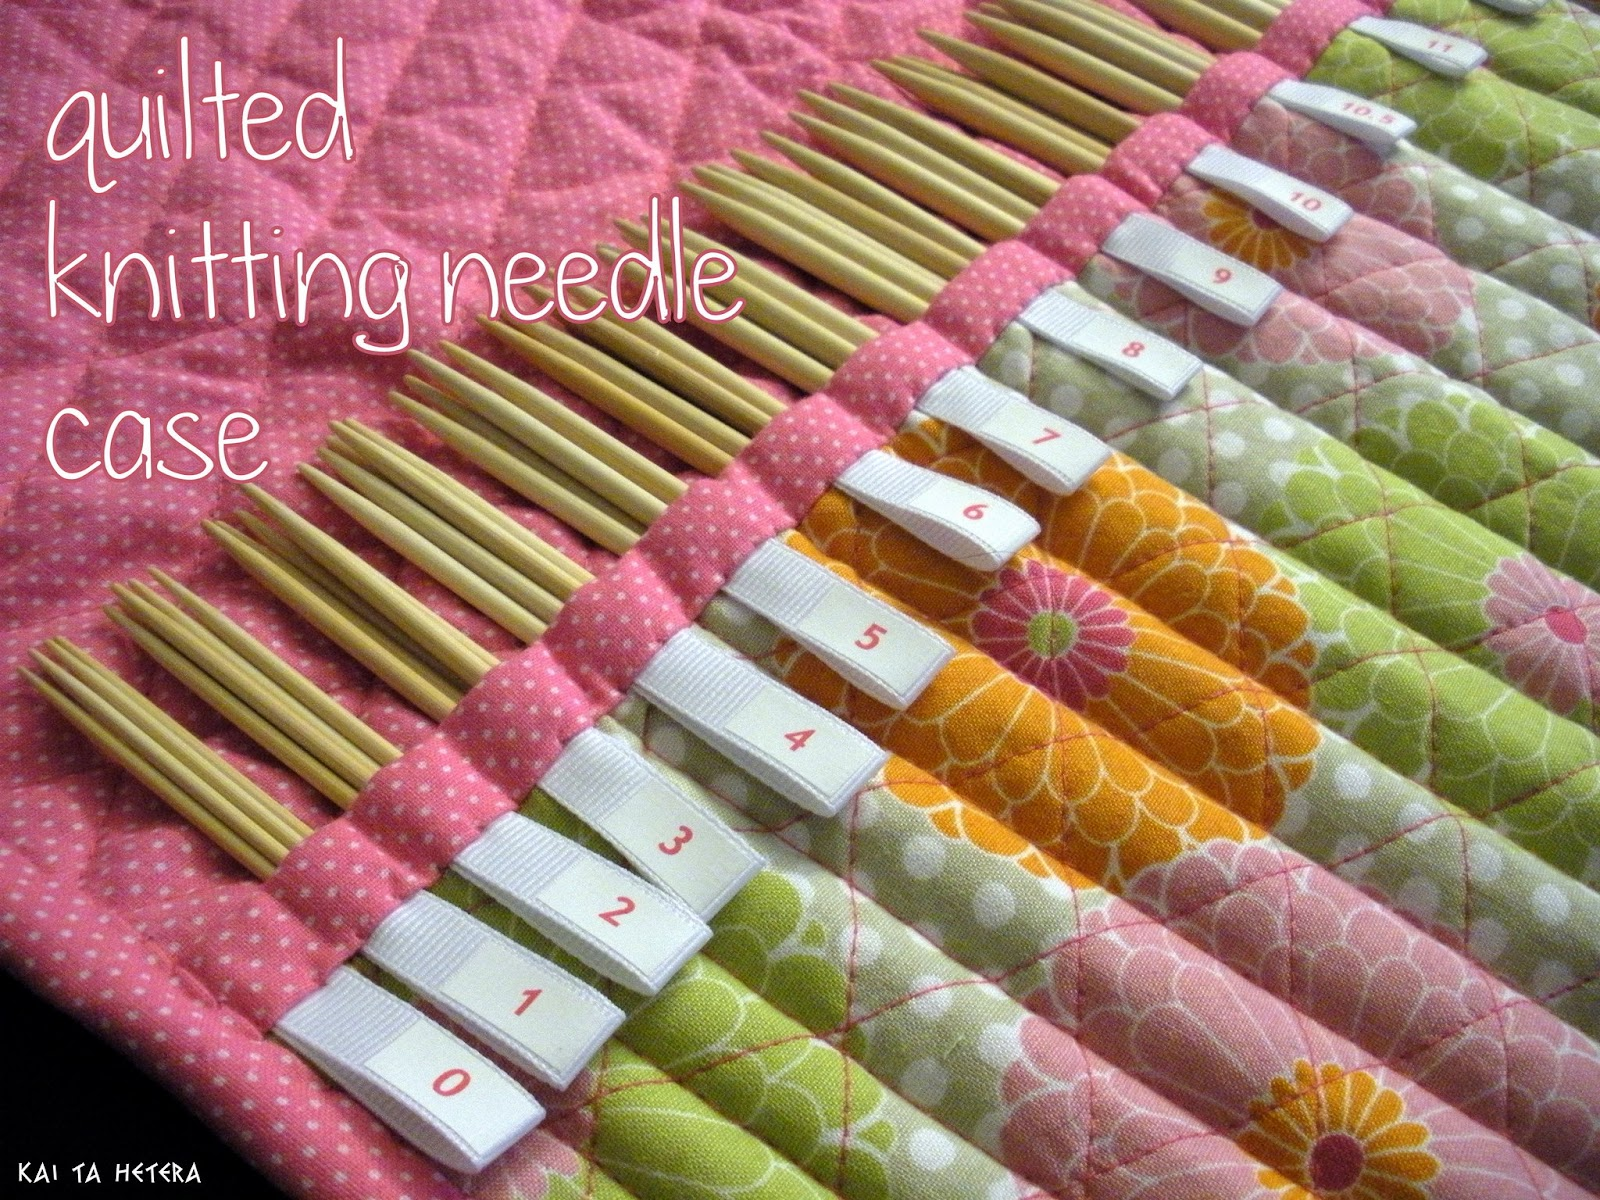 Knitting Needle Case Holder Pattern : kai ta hetera: quilted knitting needle case